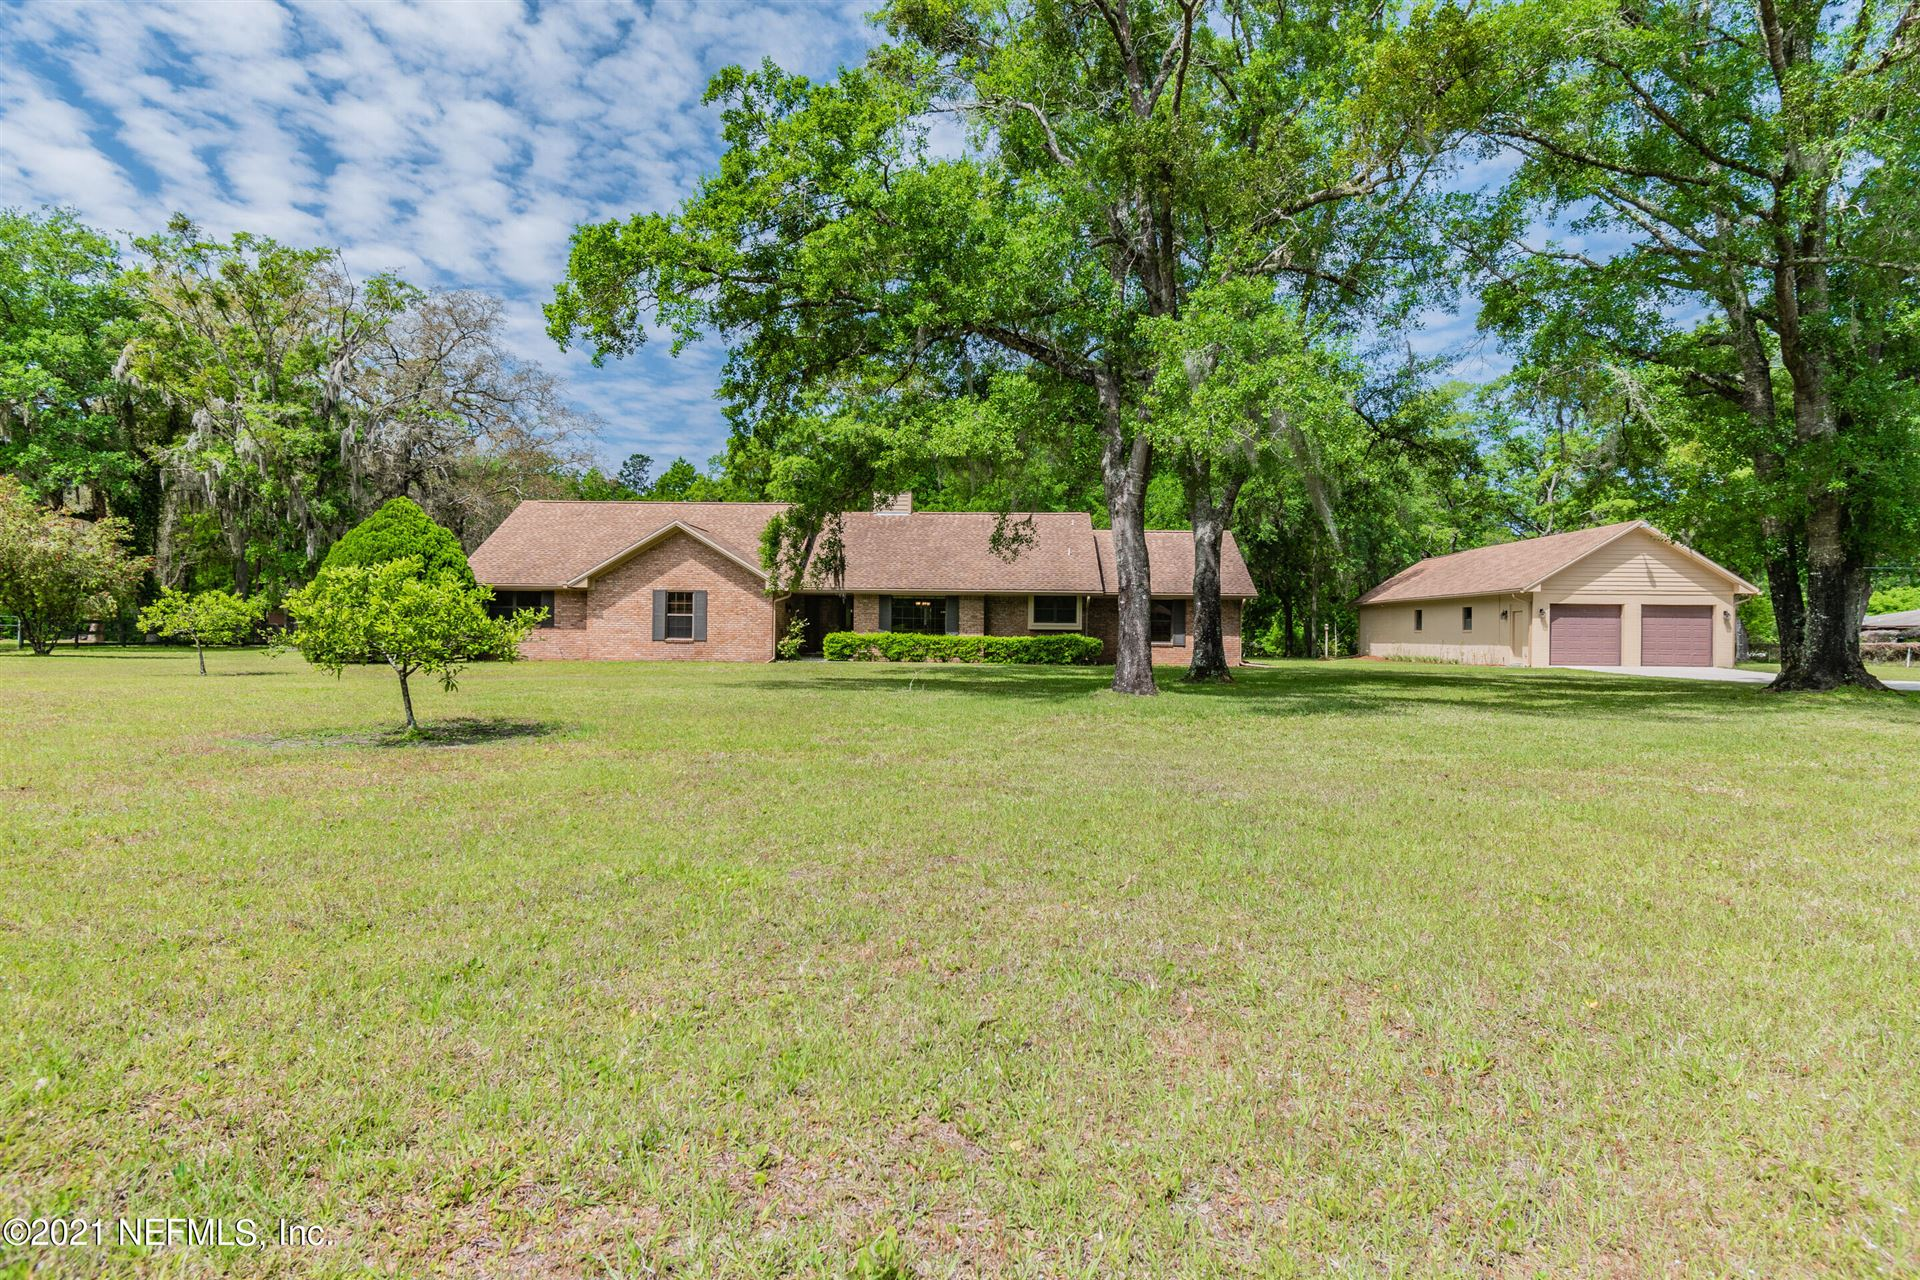 3755 COUNTY RD 210 W, Fruit Cove, FL 32259 - MLS#: 1105059